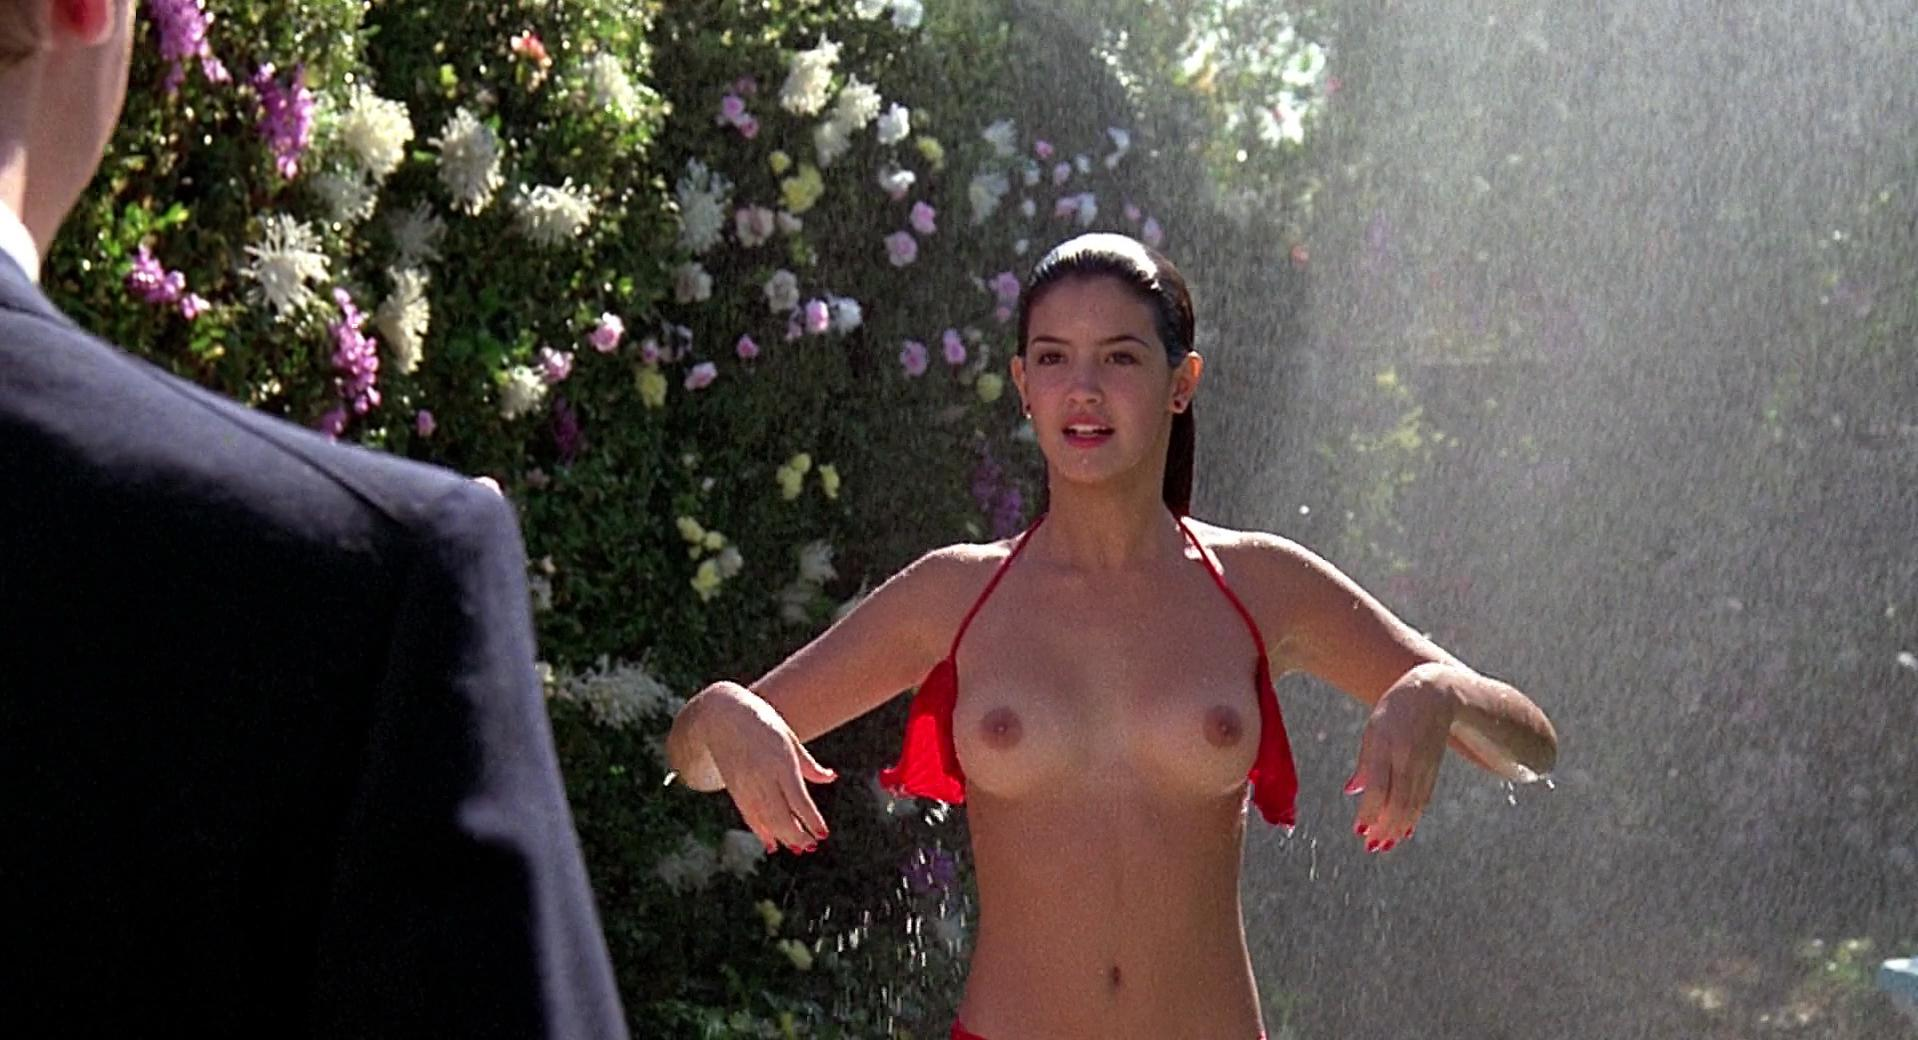 Phoebe cates full frontal